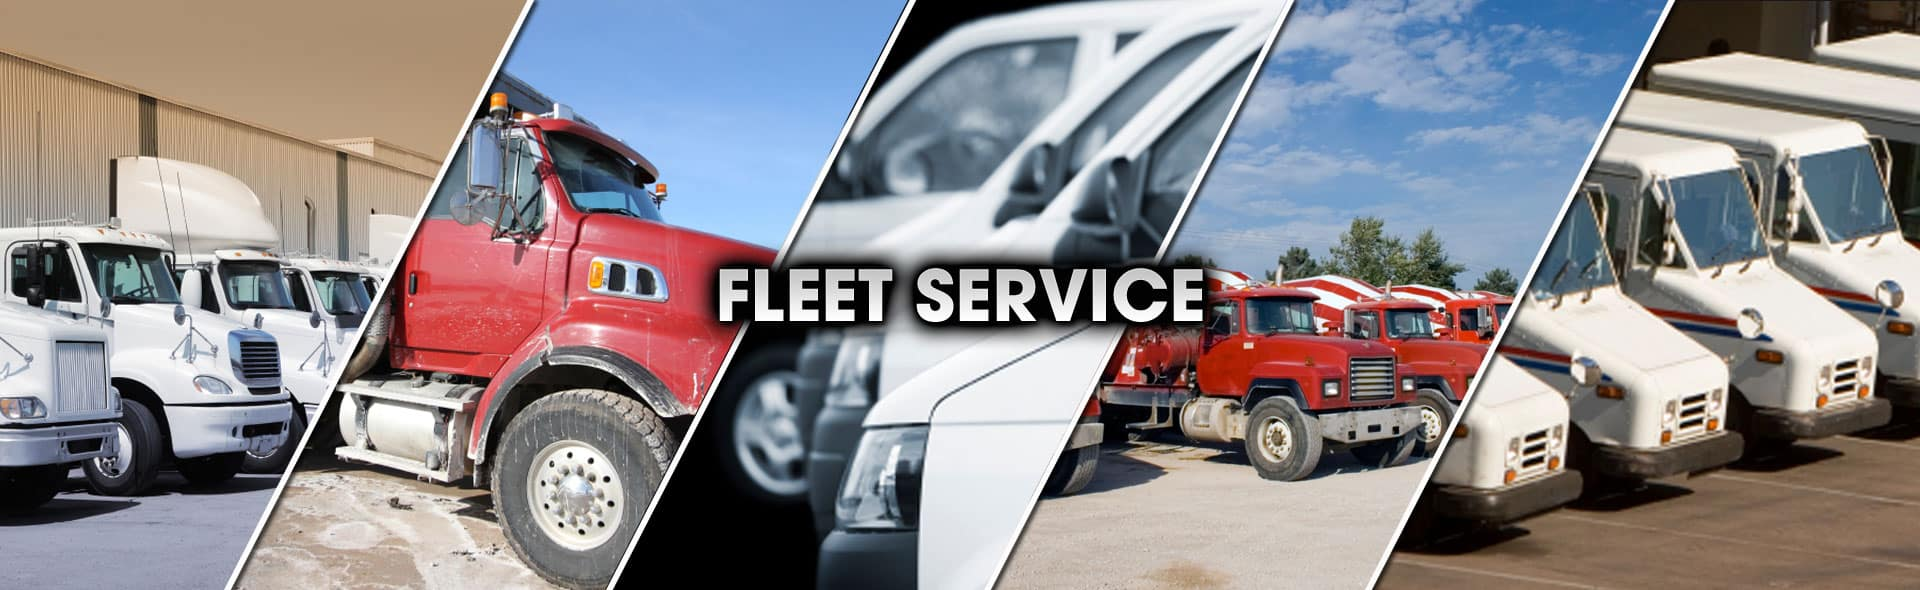 Bison Fleet Specialists - Fleet Service in Buffalo, NY